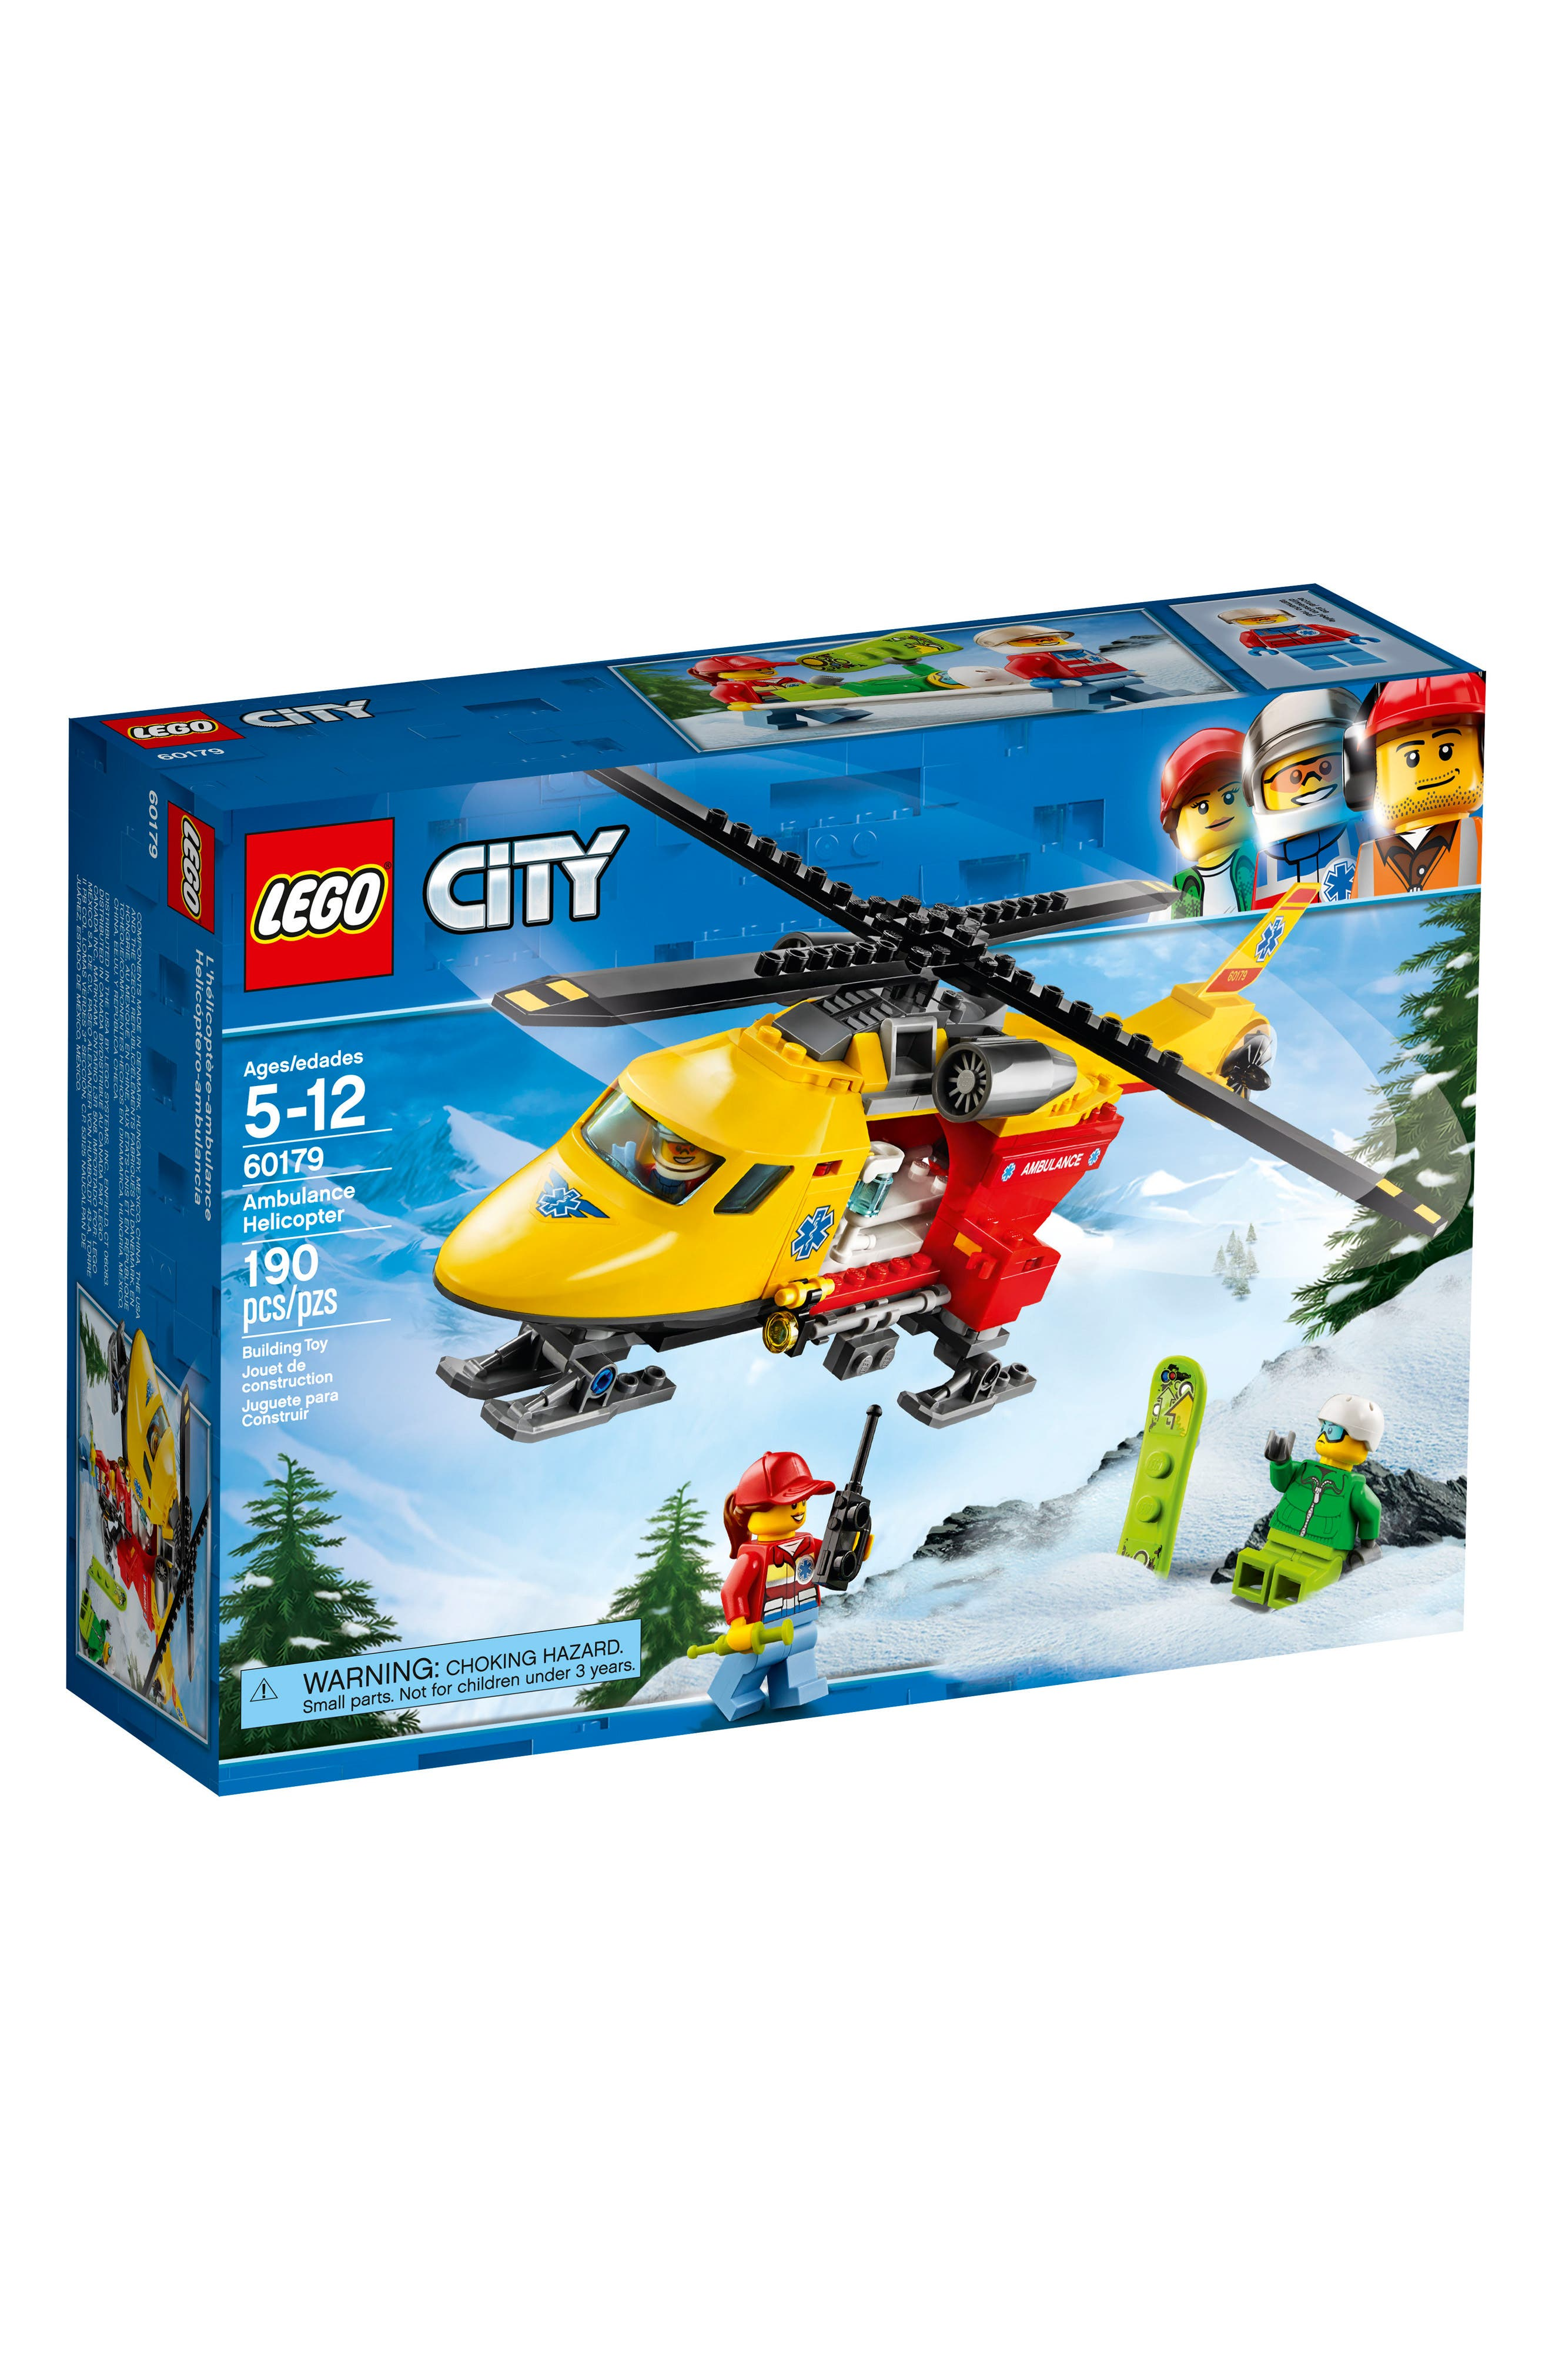 LEGO<sup>™</sup> City Ambulance Helicopter - 60179,                             Main thumbnail 1, color,                             Multi